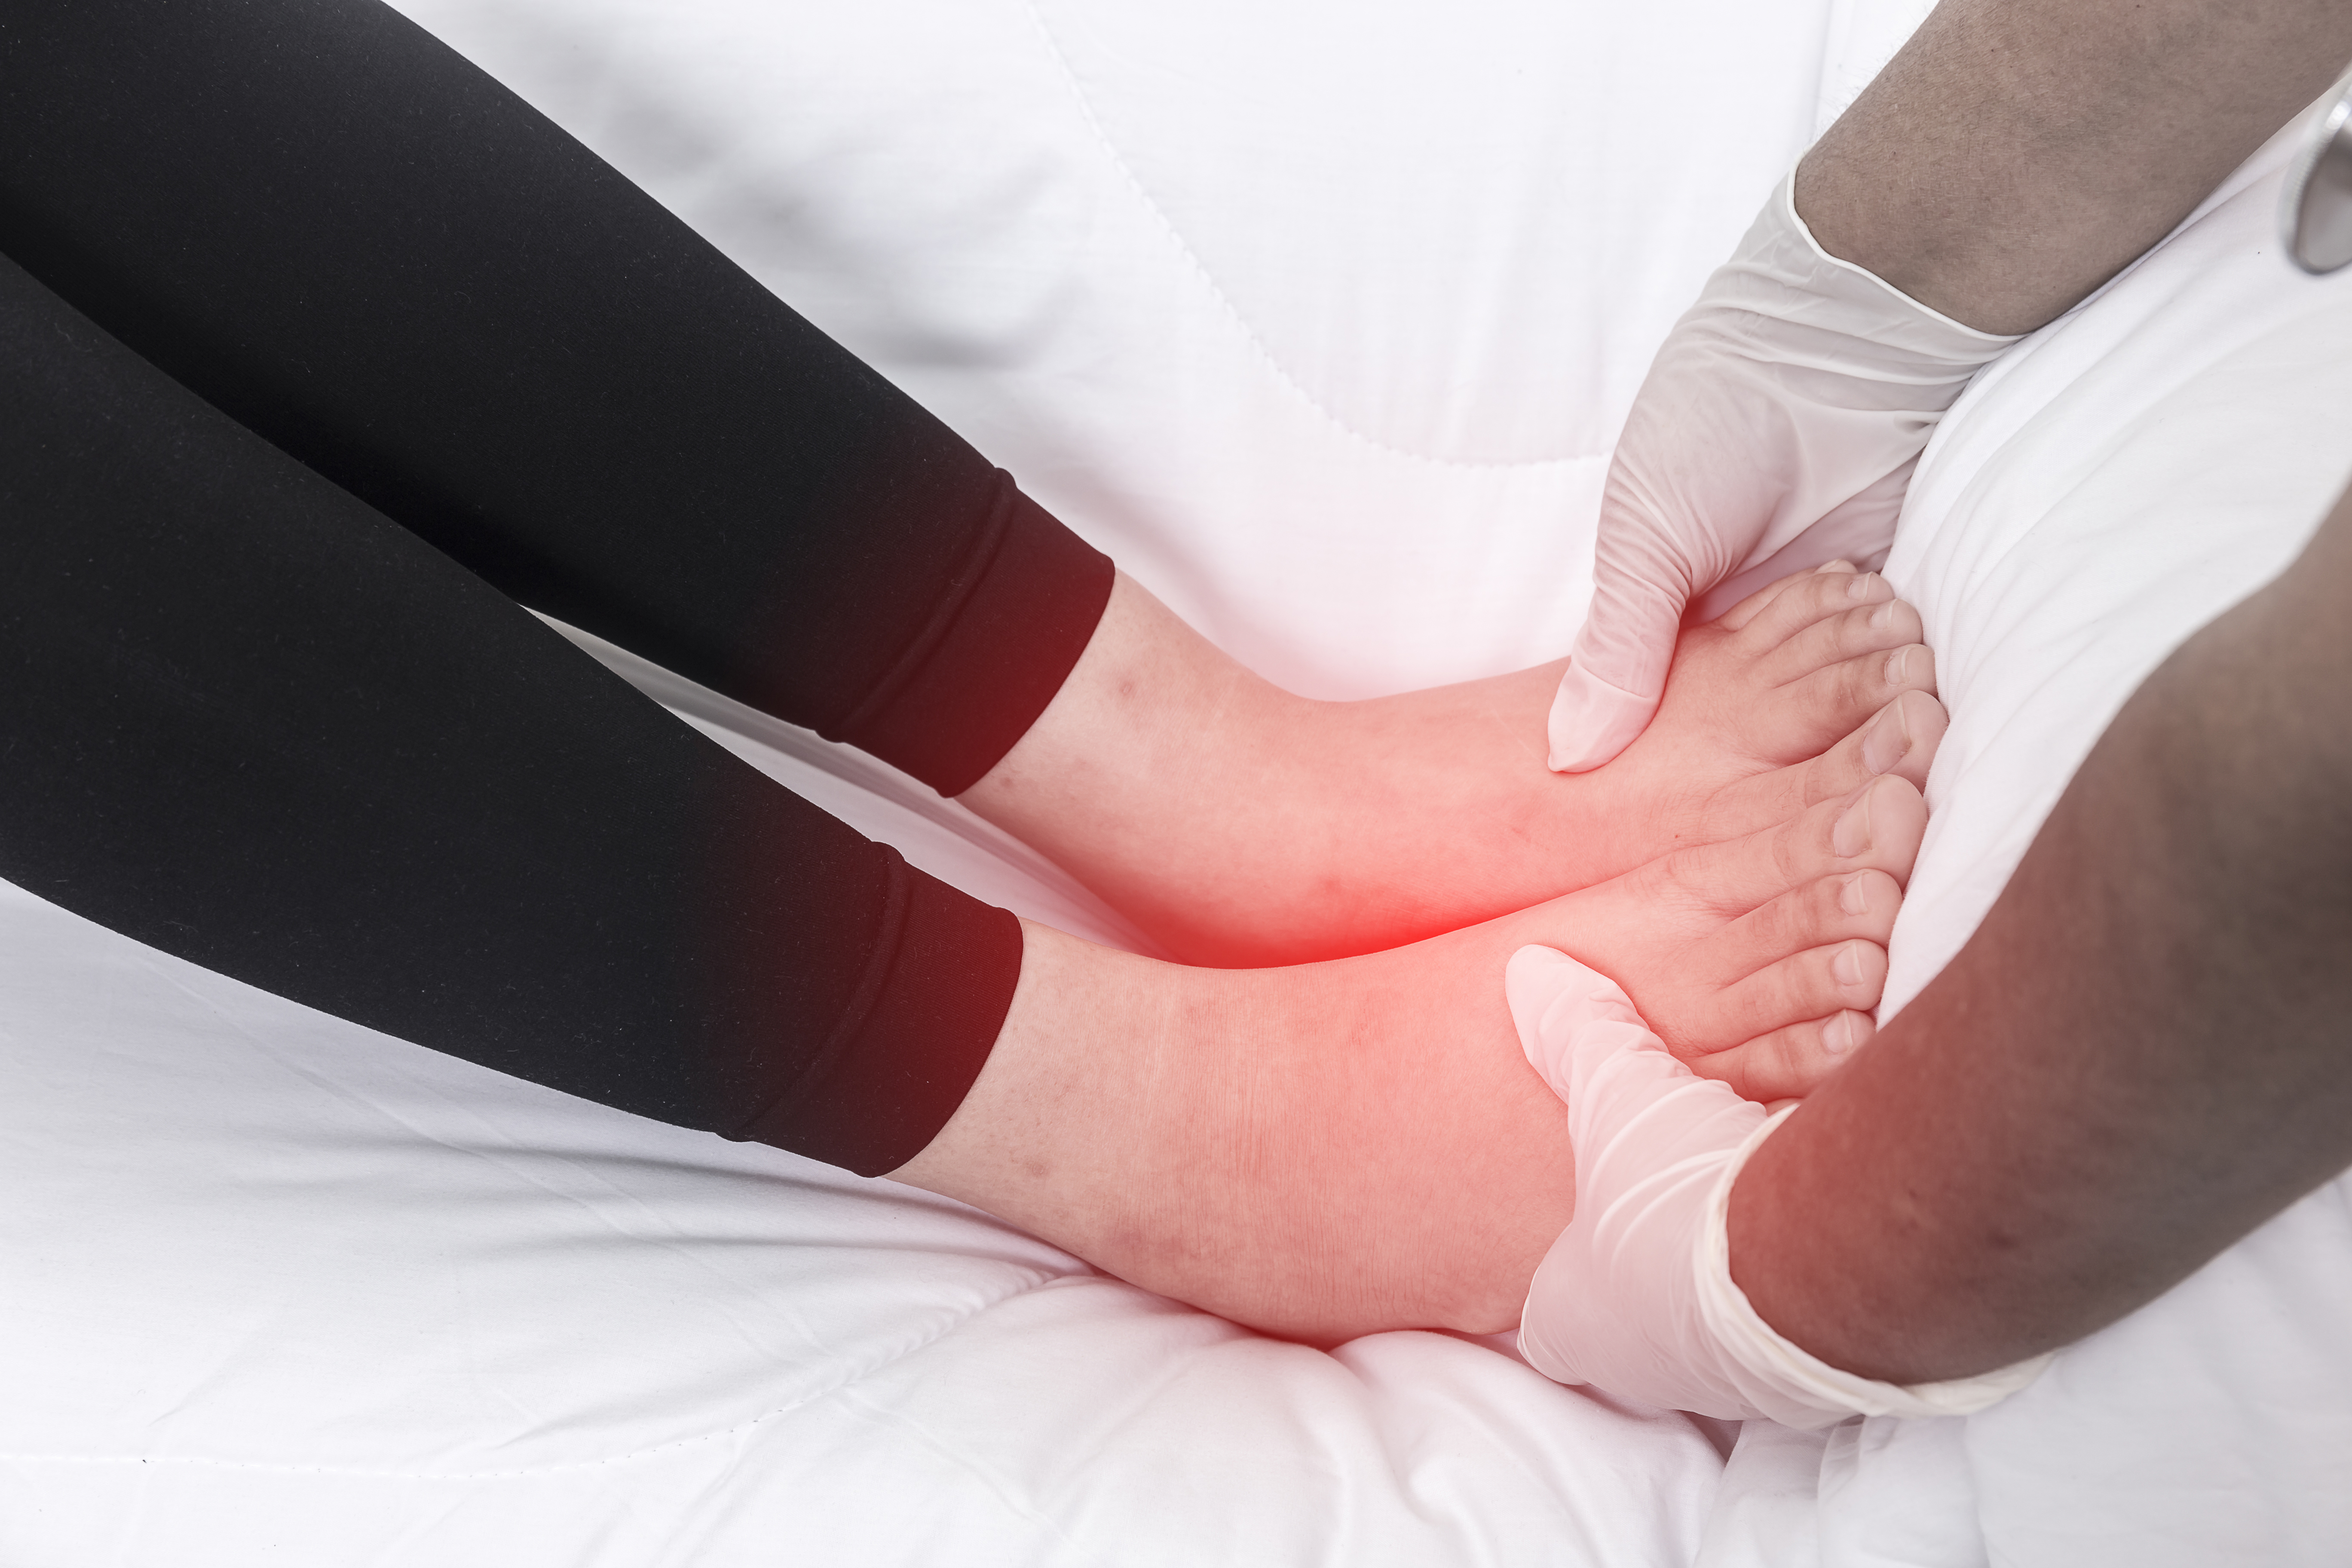 Can Menopause Cause Bilateral Edema in the Ankles & Calves?